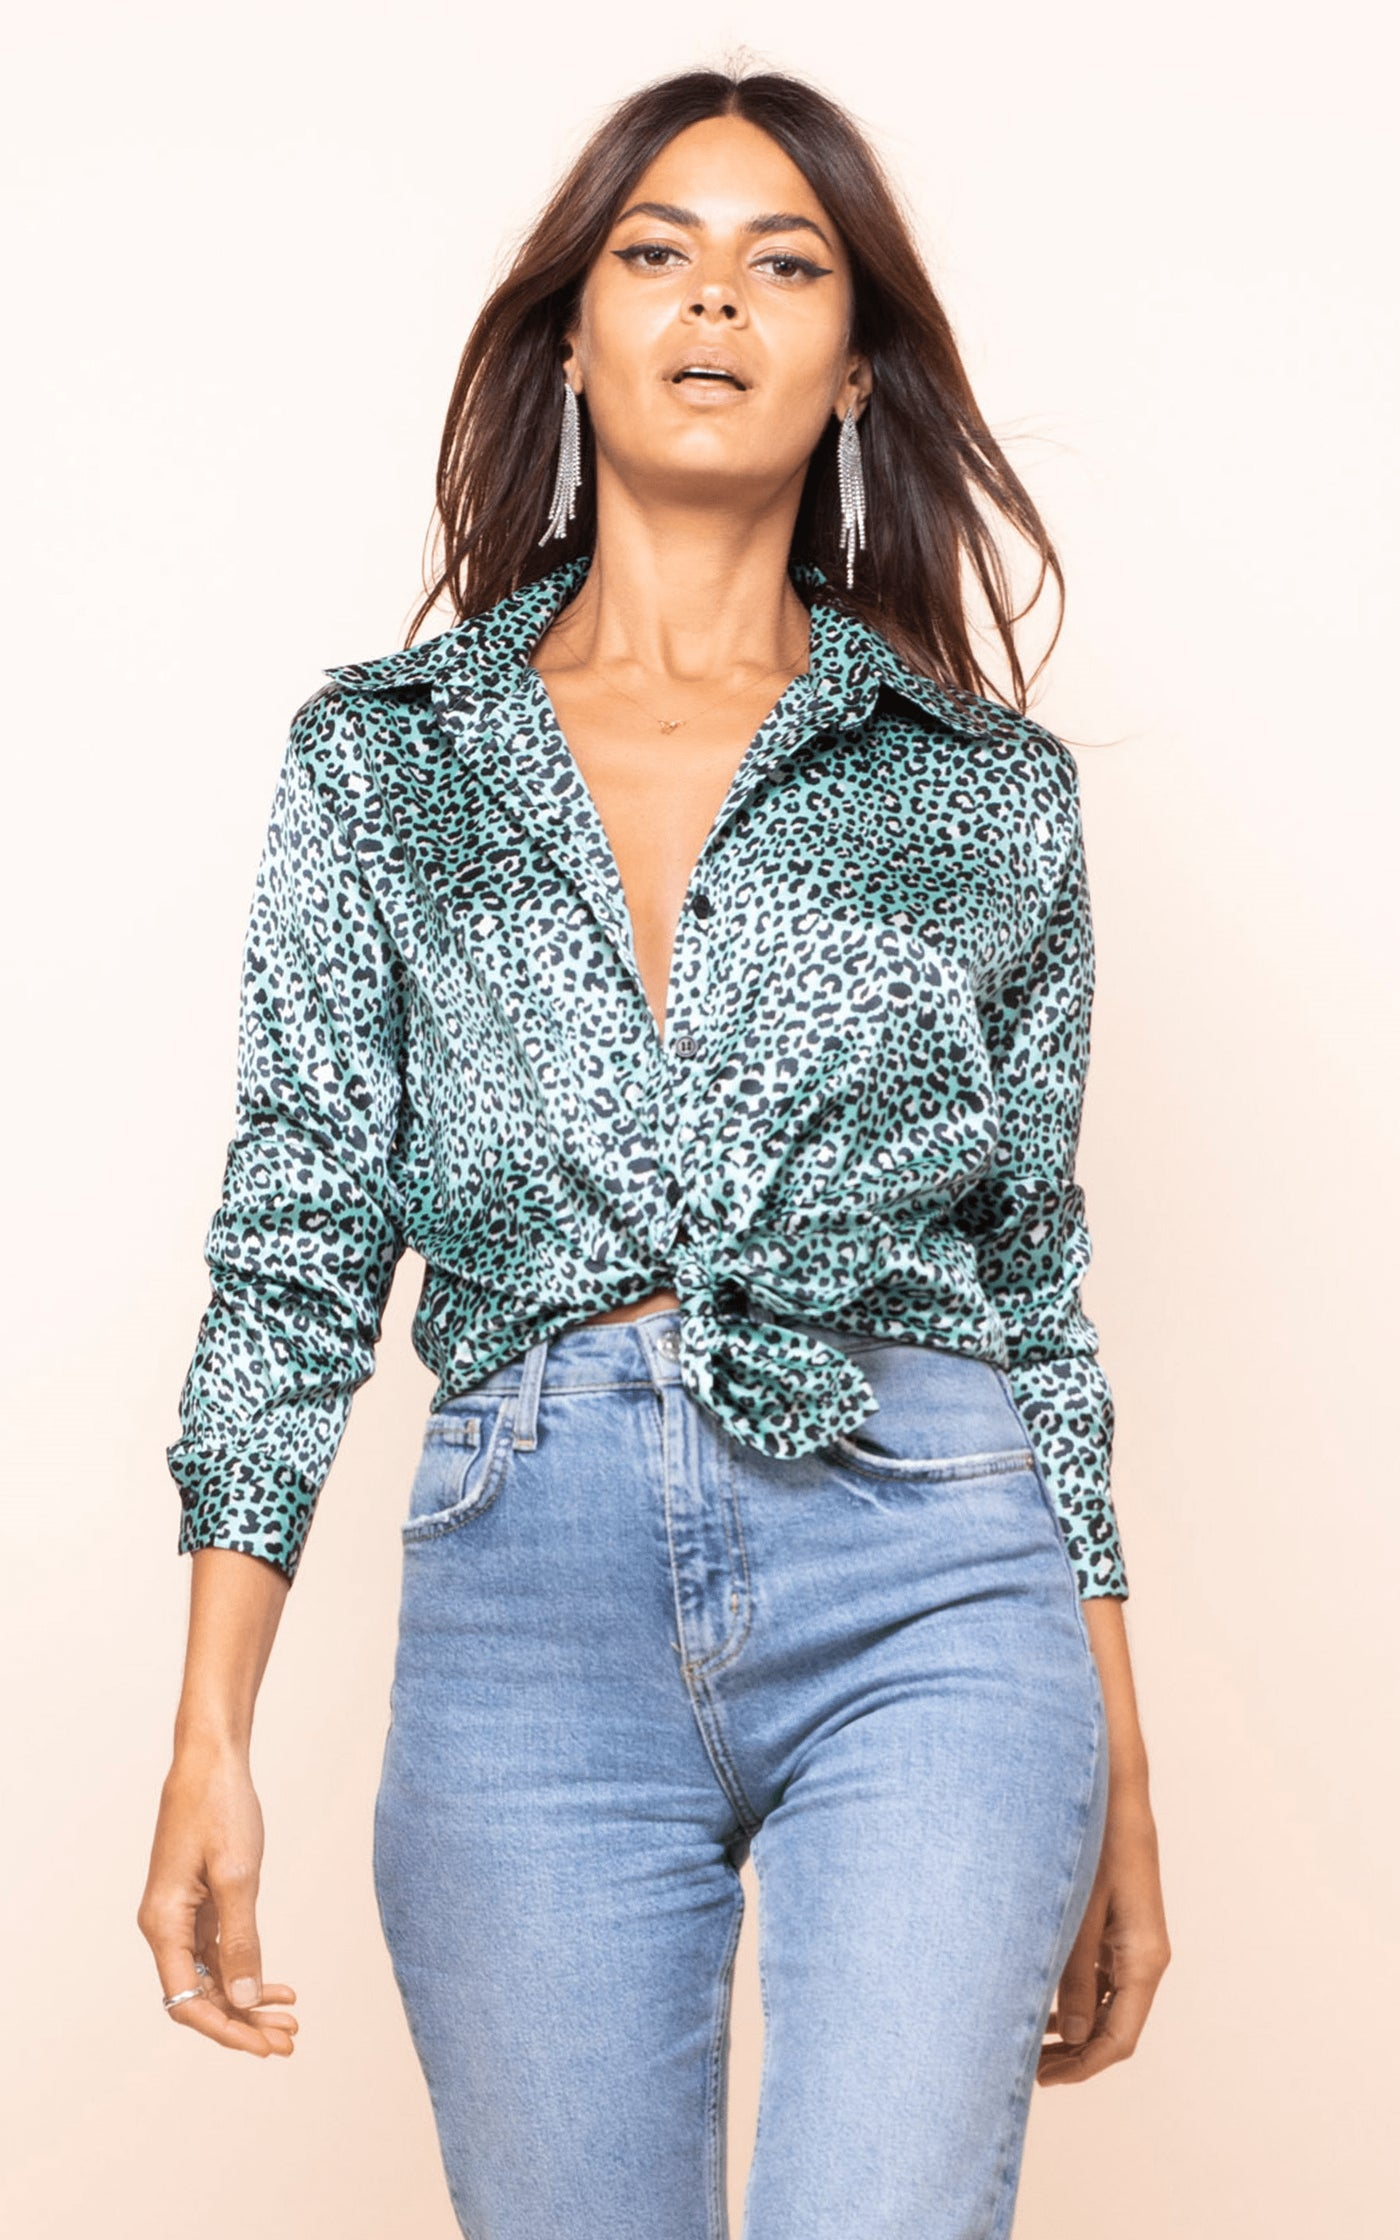 Dancing Leopard model walks forward wearing Nevada Shirt in mint ditzy leopard print with jeans